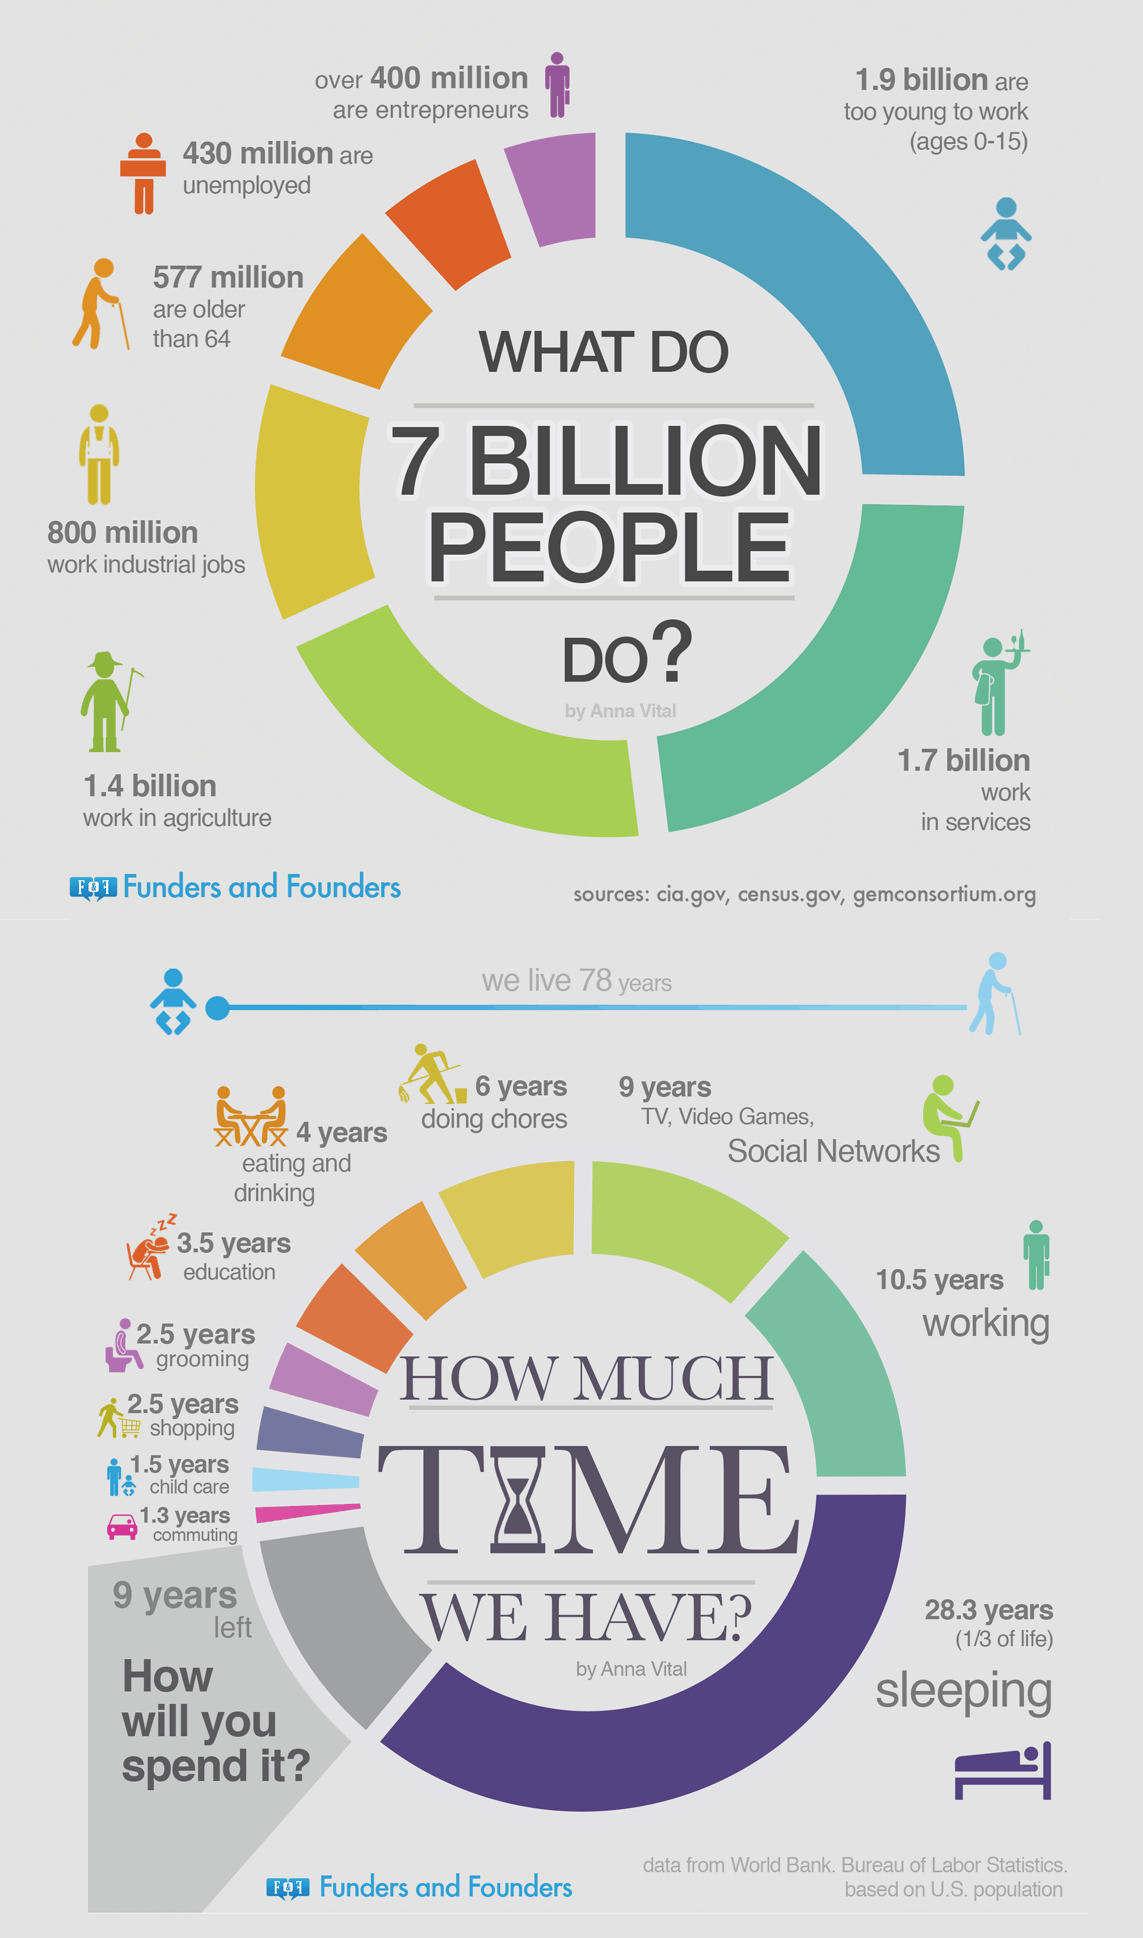 What Do 7 Billion People Do? And How Much Time We Have? #infographic